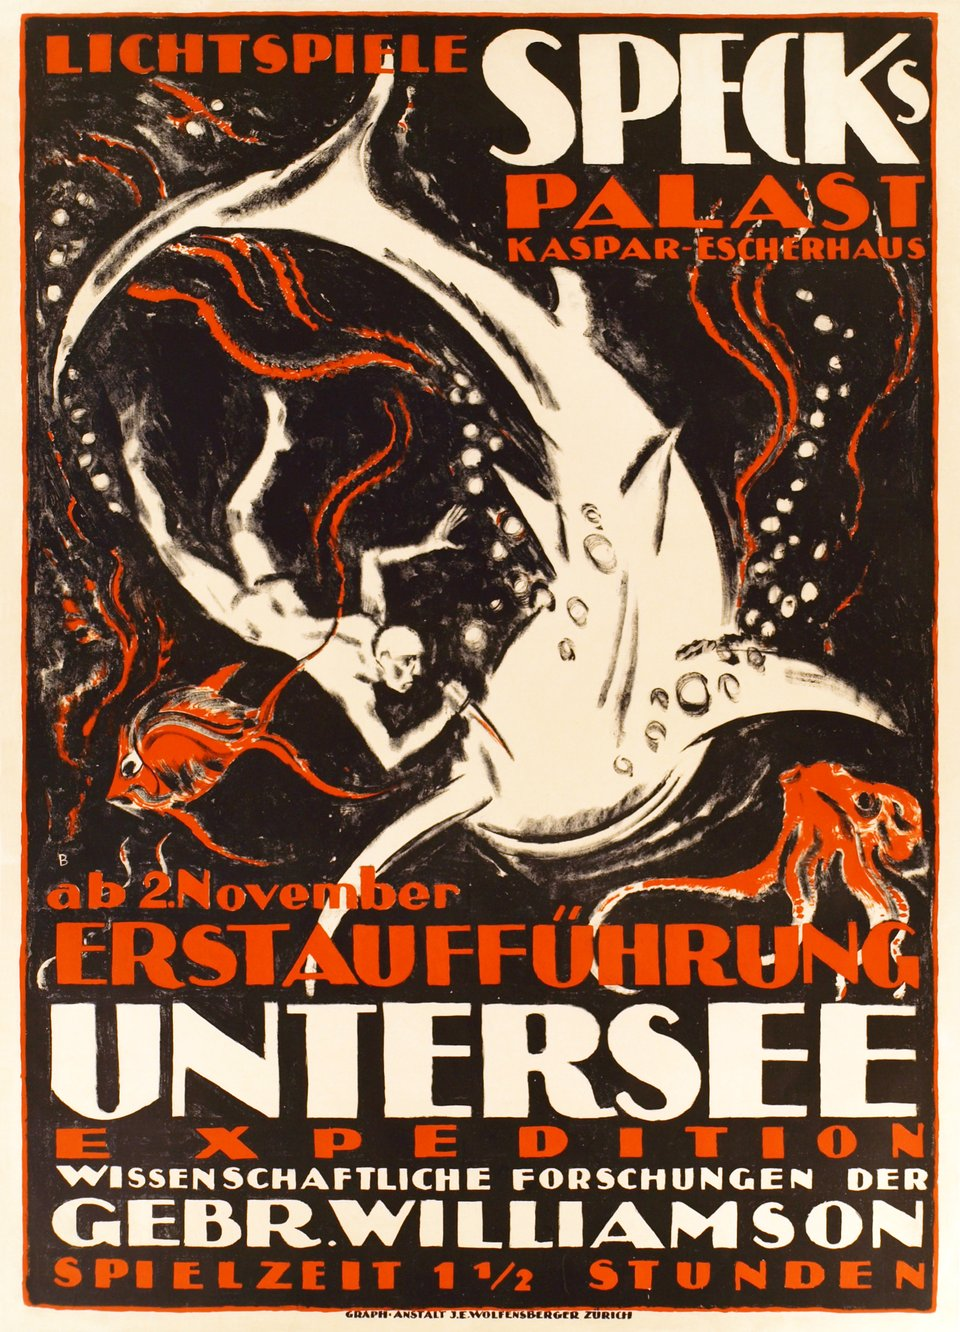 Lichtspiele speck's Palast, Untersee expedition – Vintage poster – Otto BAUMBERGER – 1916